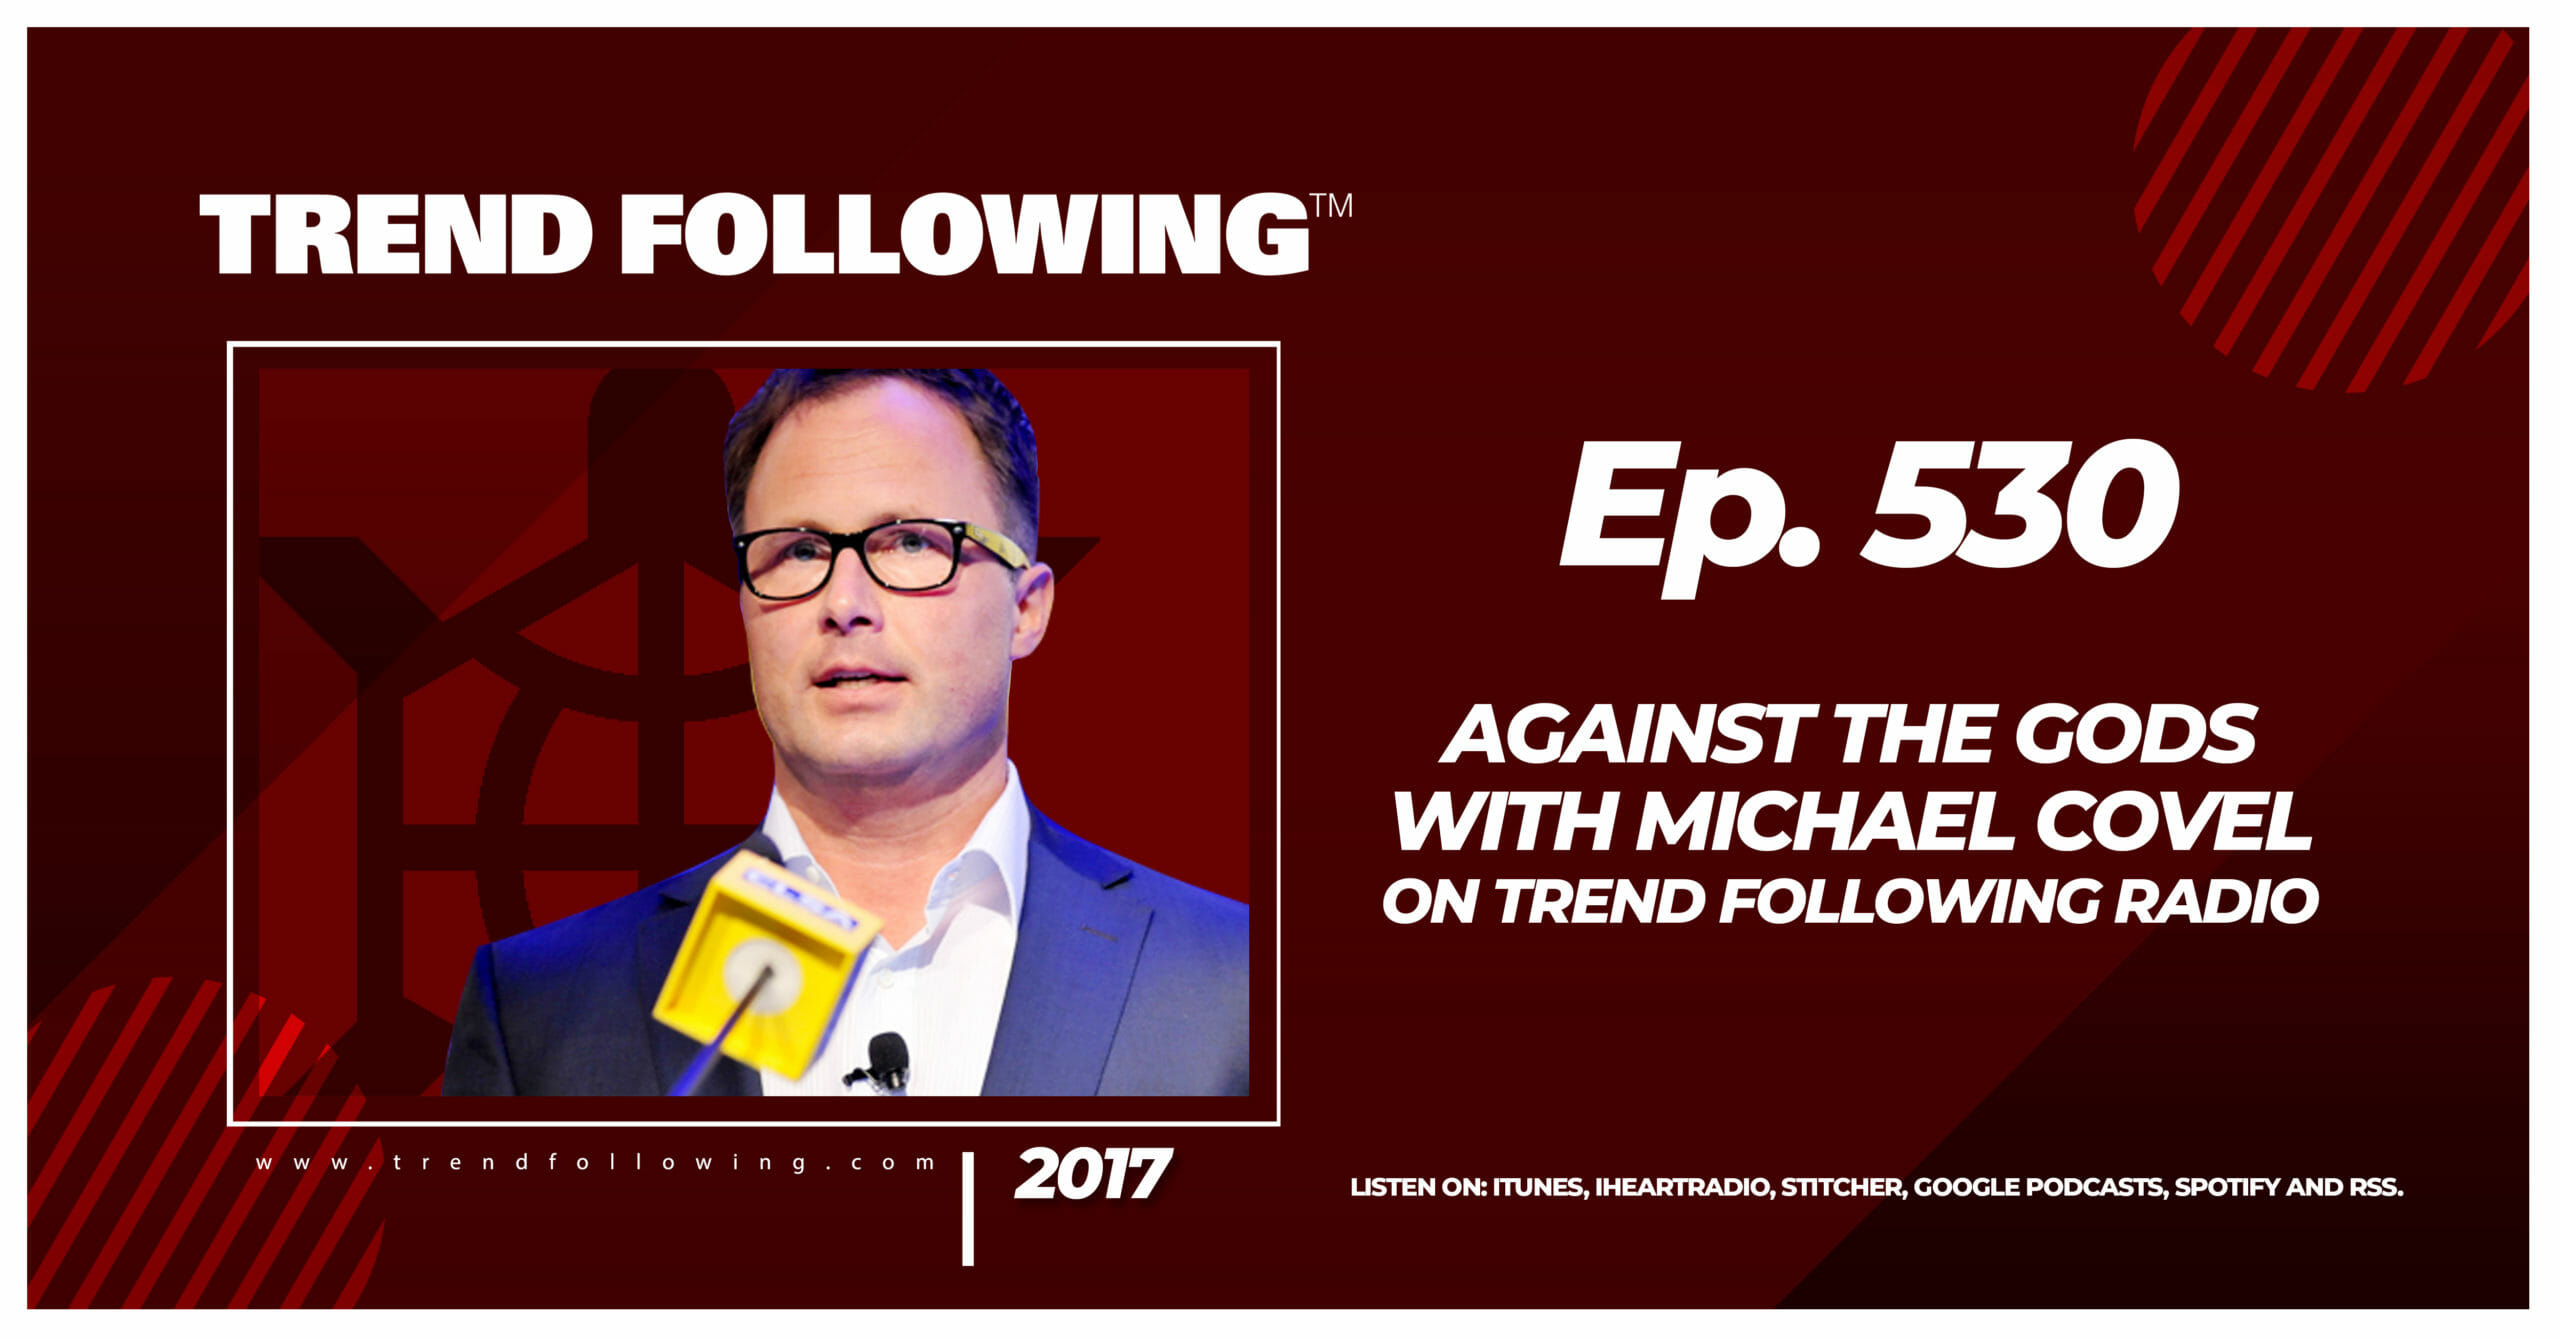 Against the Gods with Michael Covel on Trend Following Radio